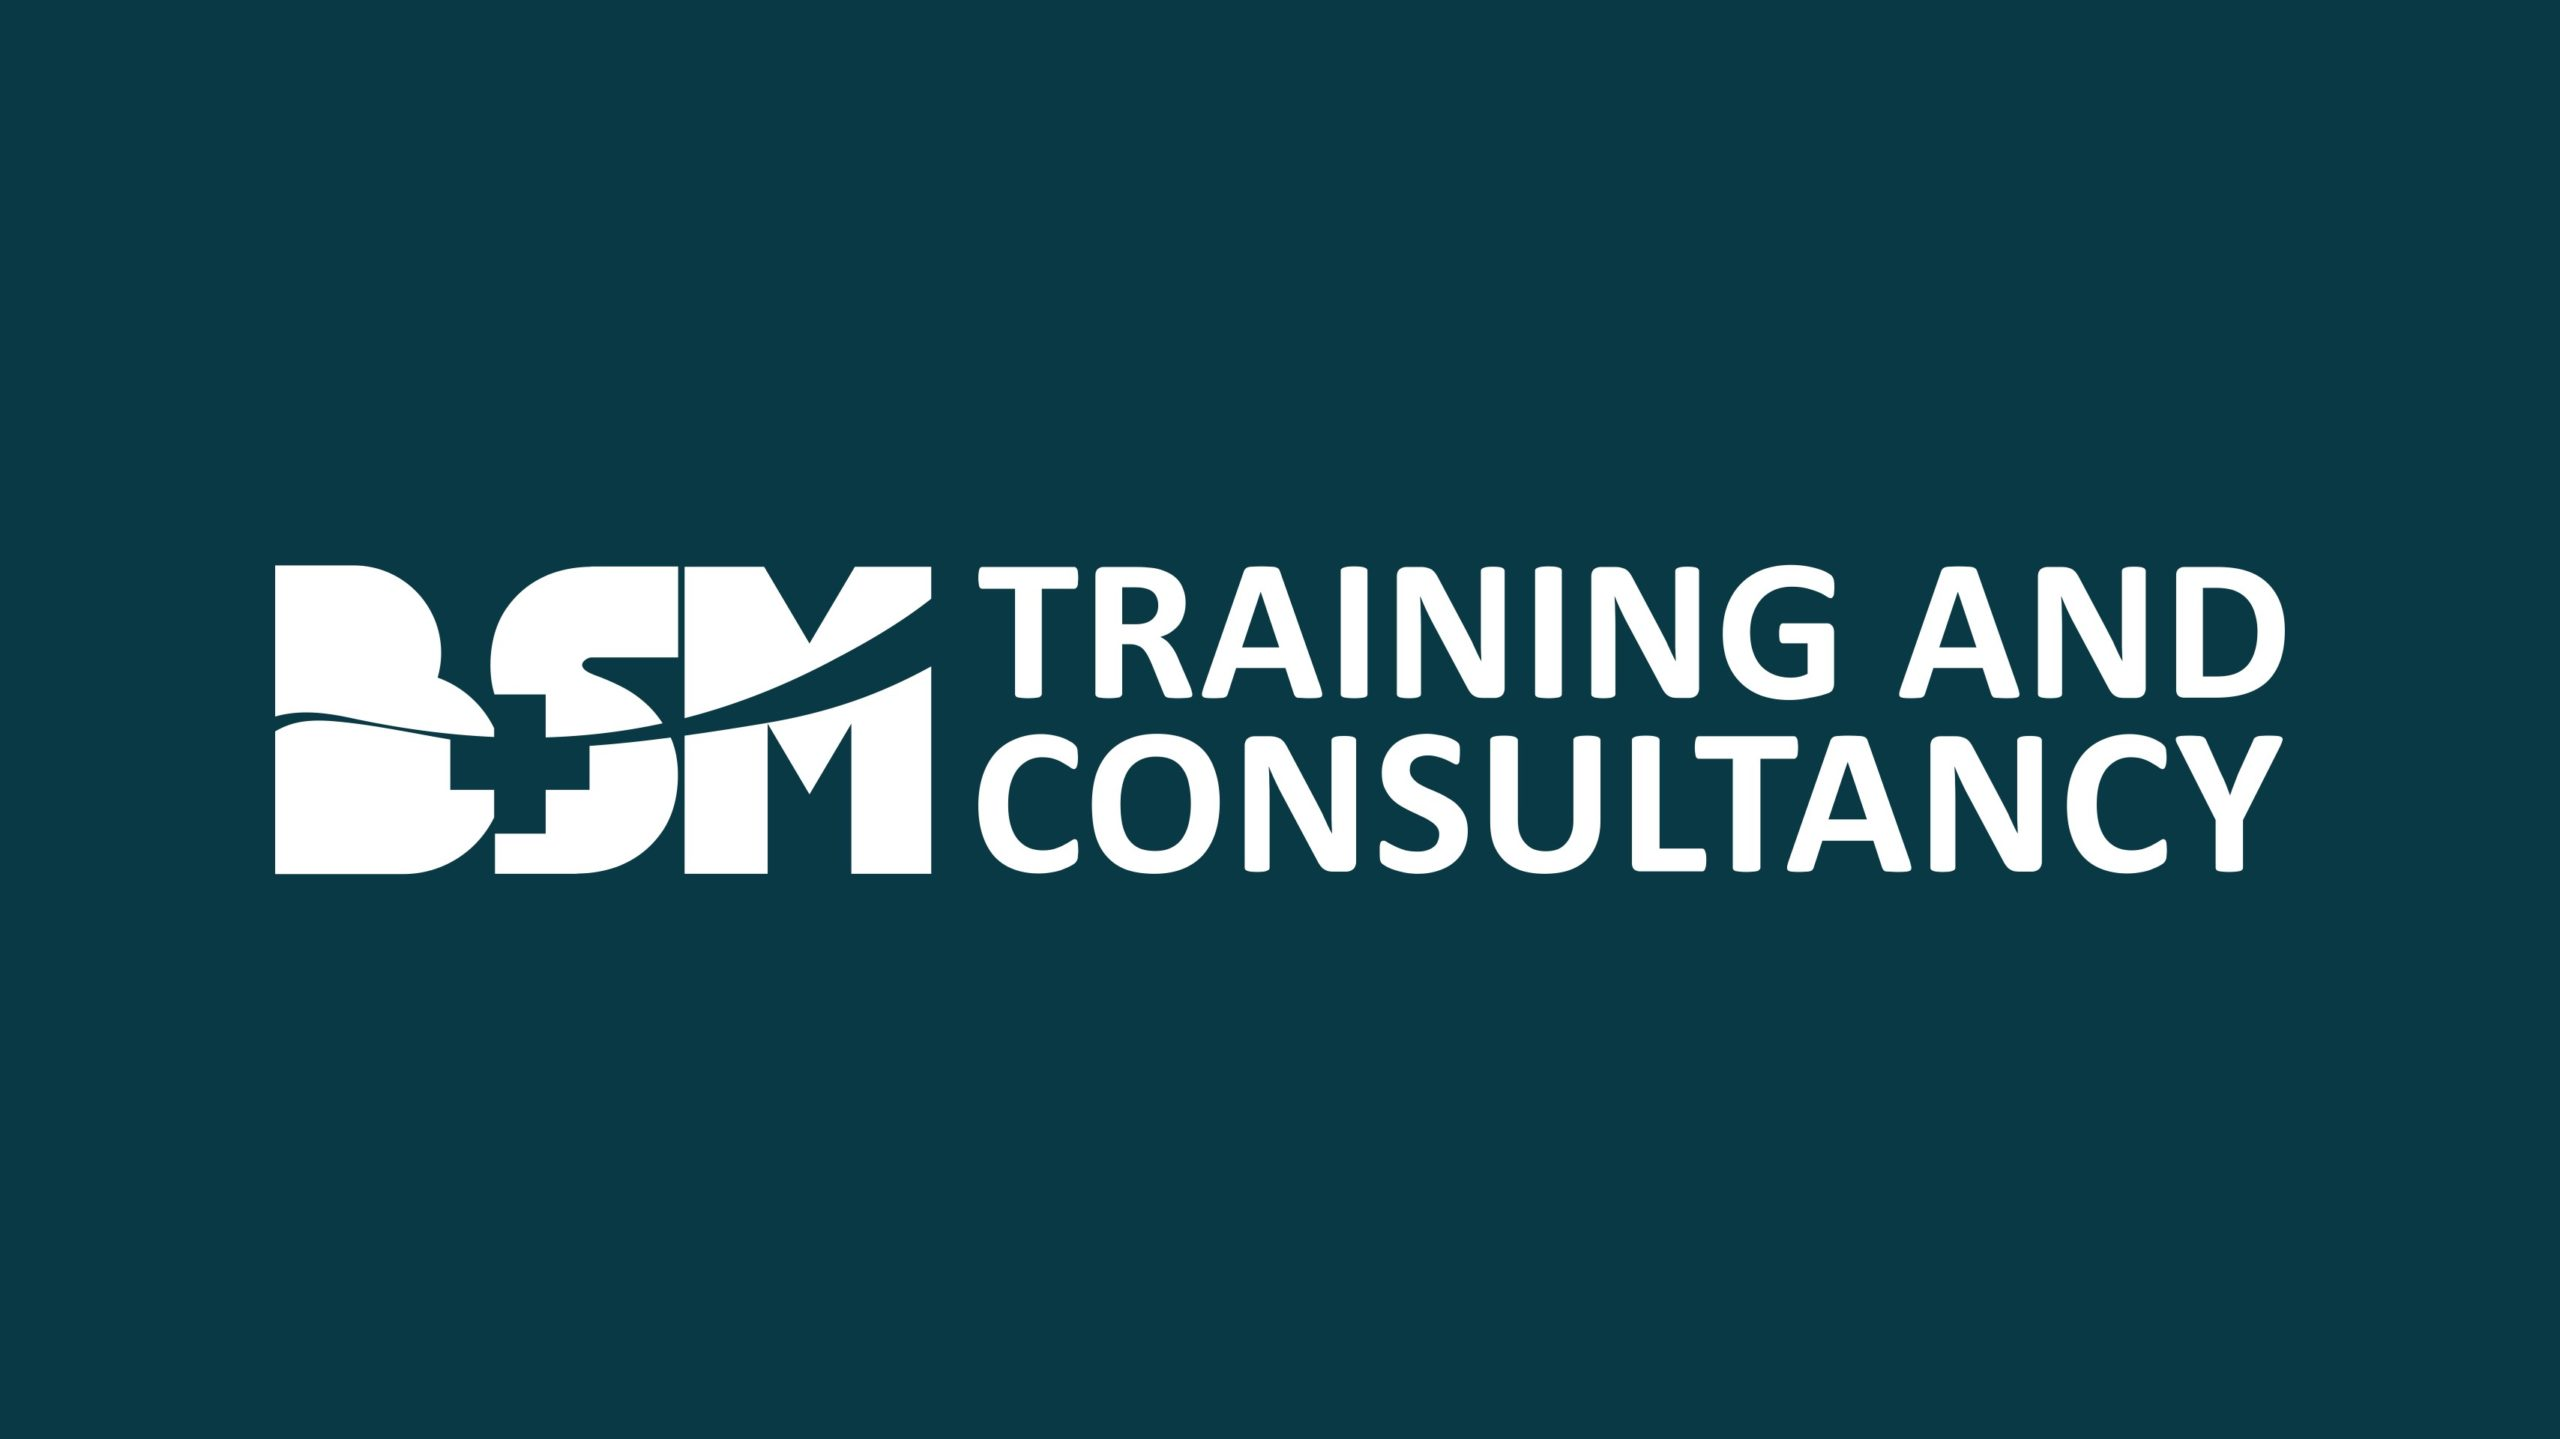 BSM Training and Consultancy